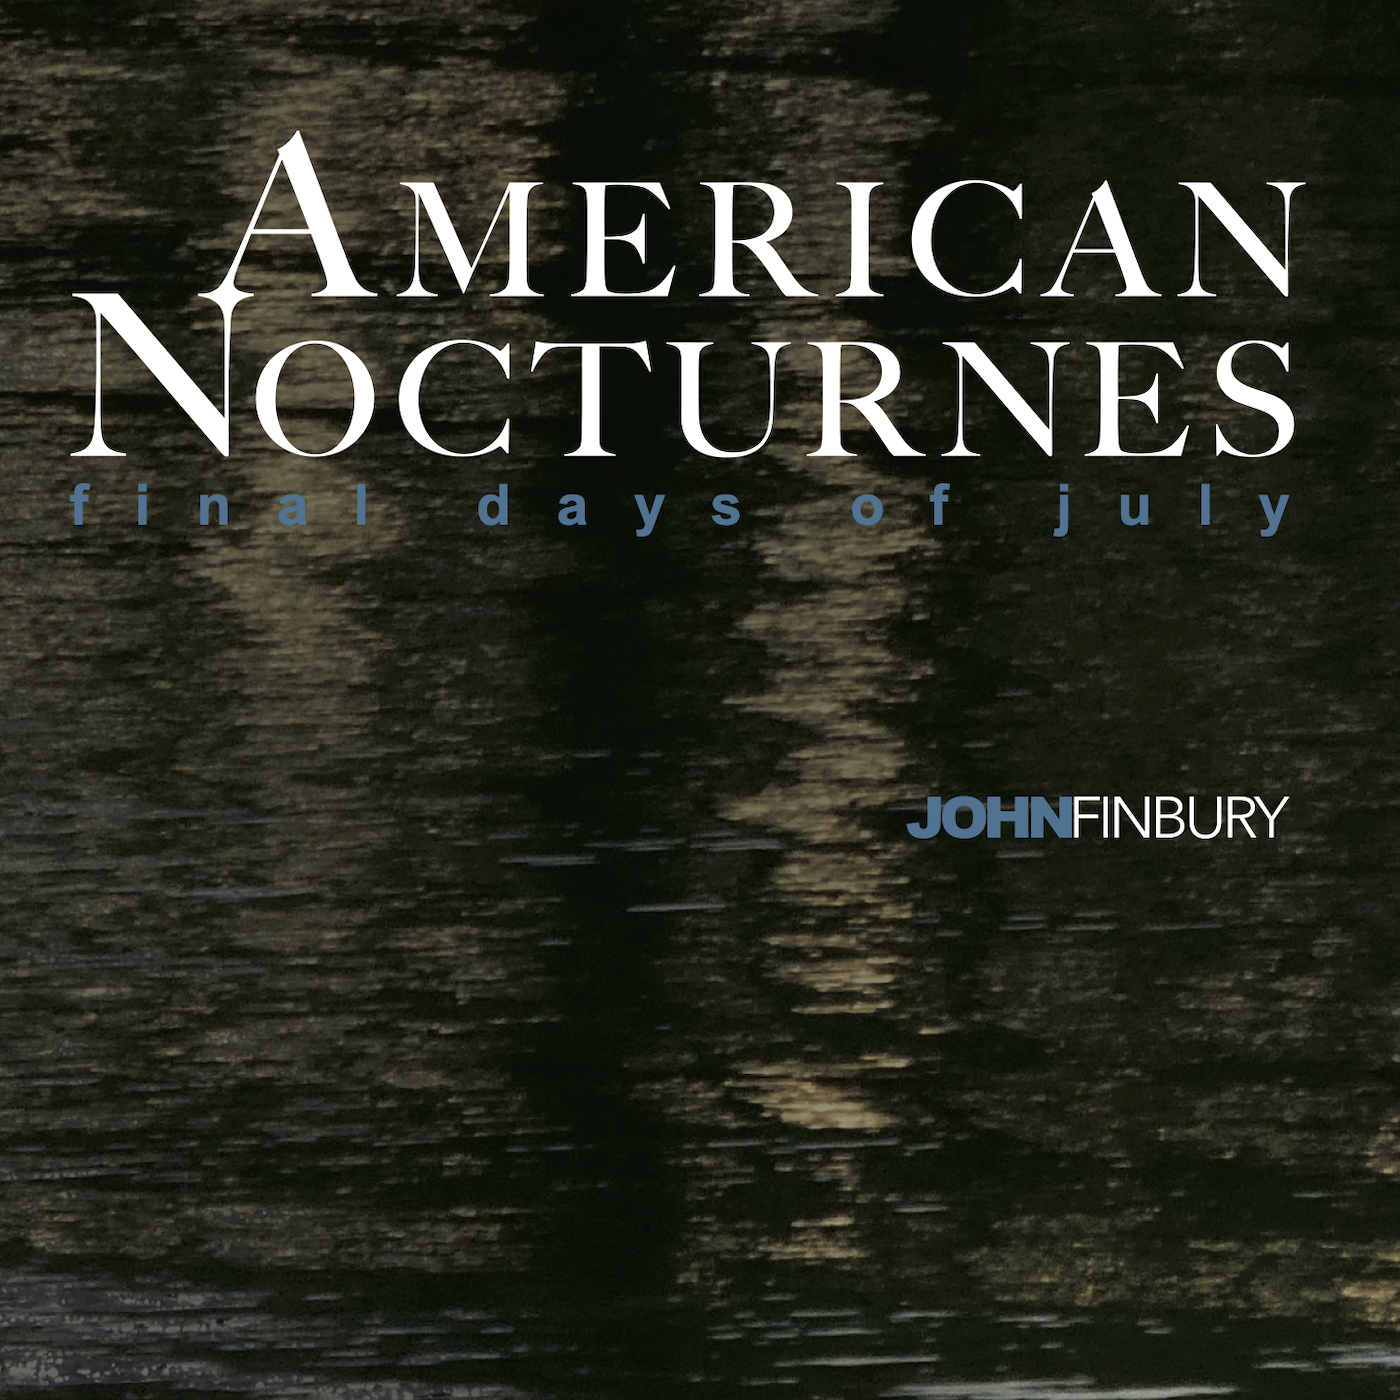 The Fire Note Album Review of American Nocturnes – Final Days Of July